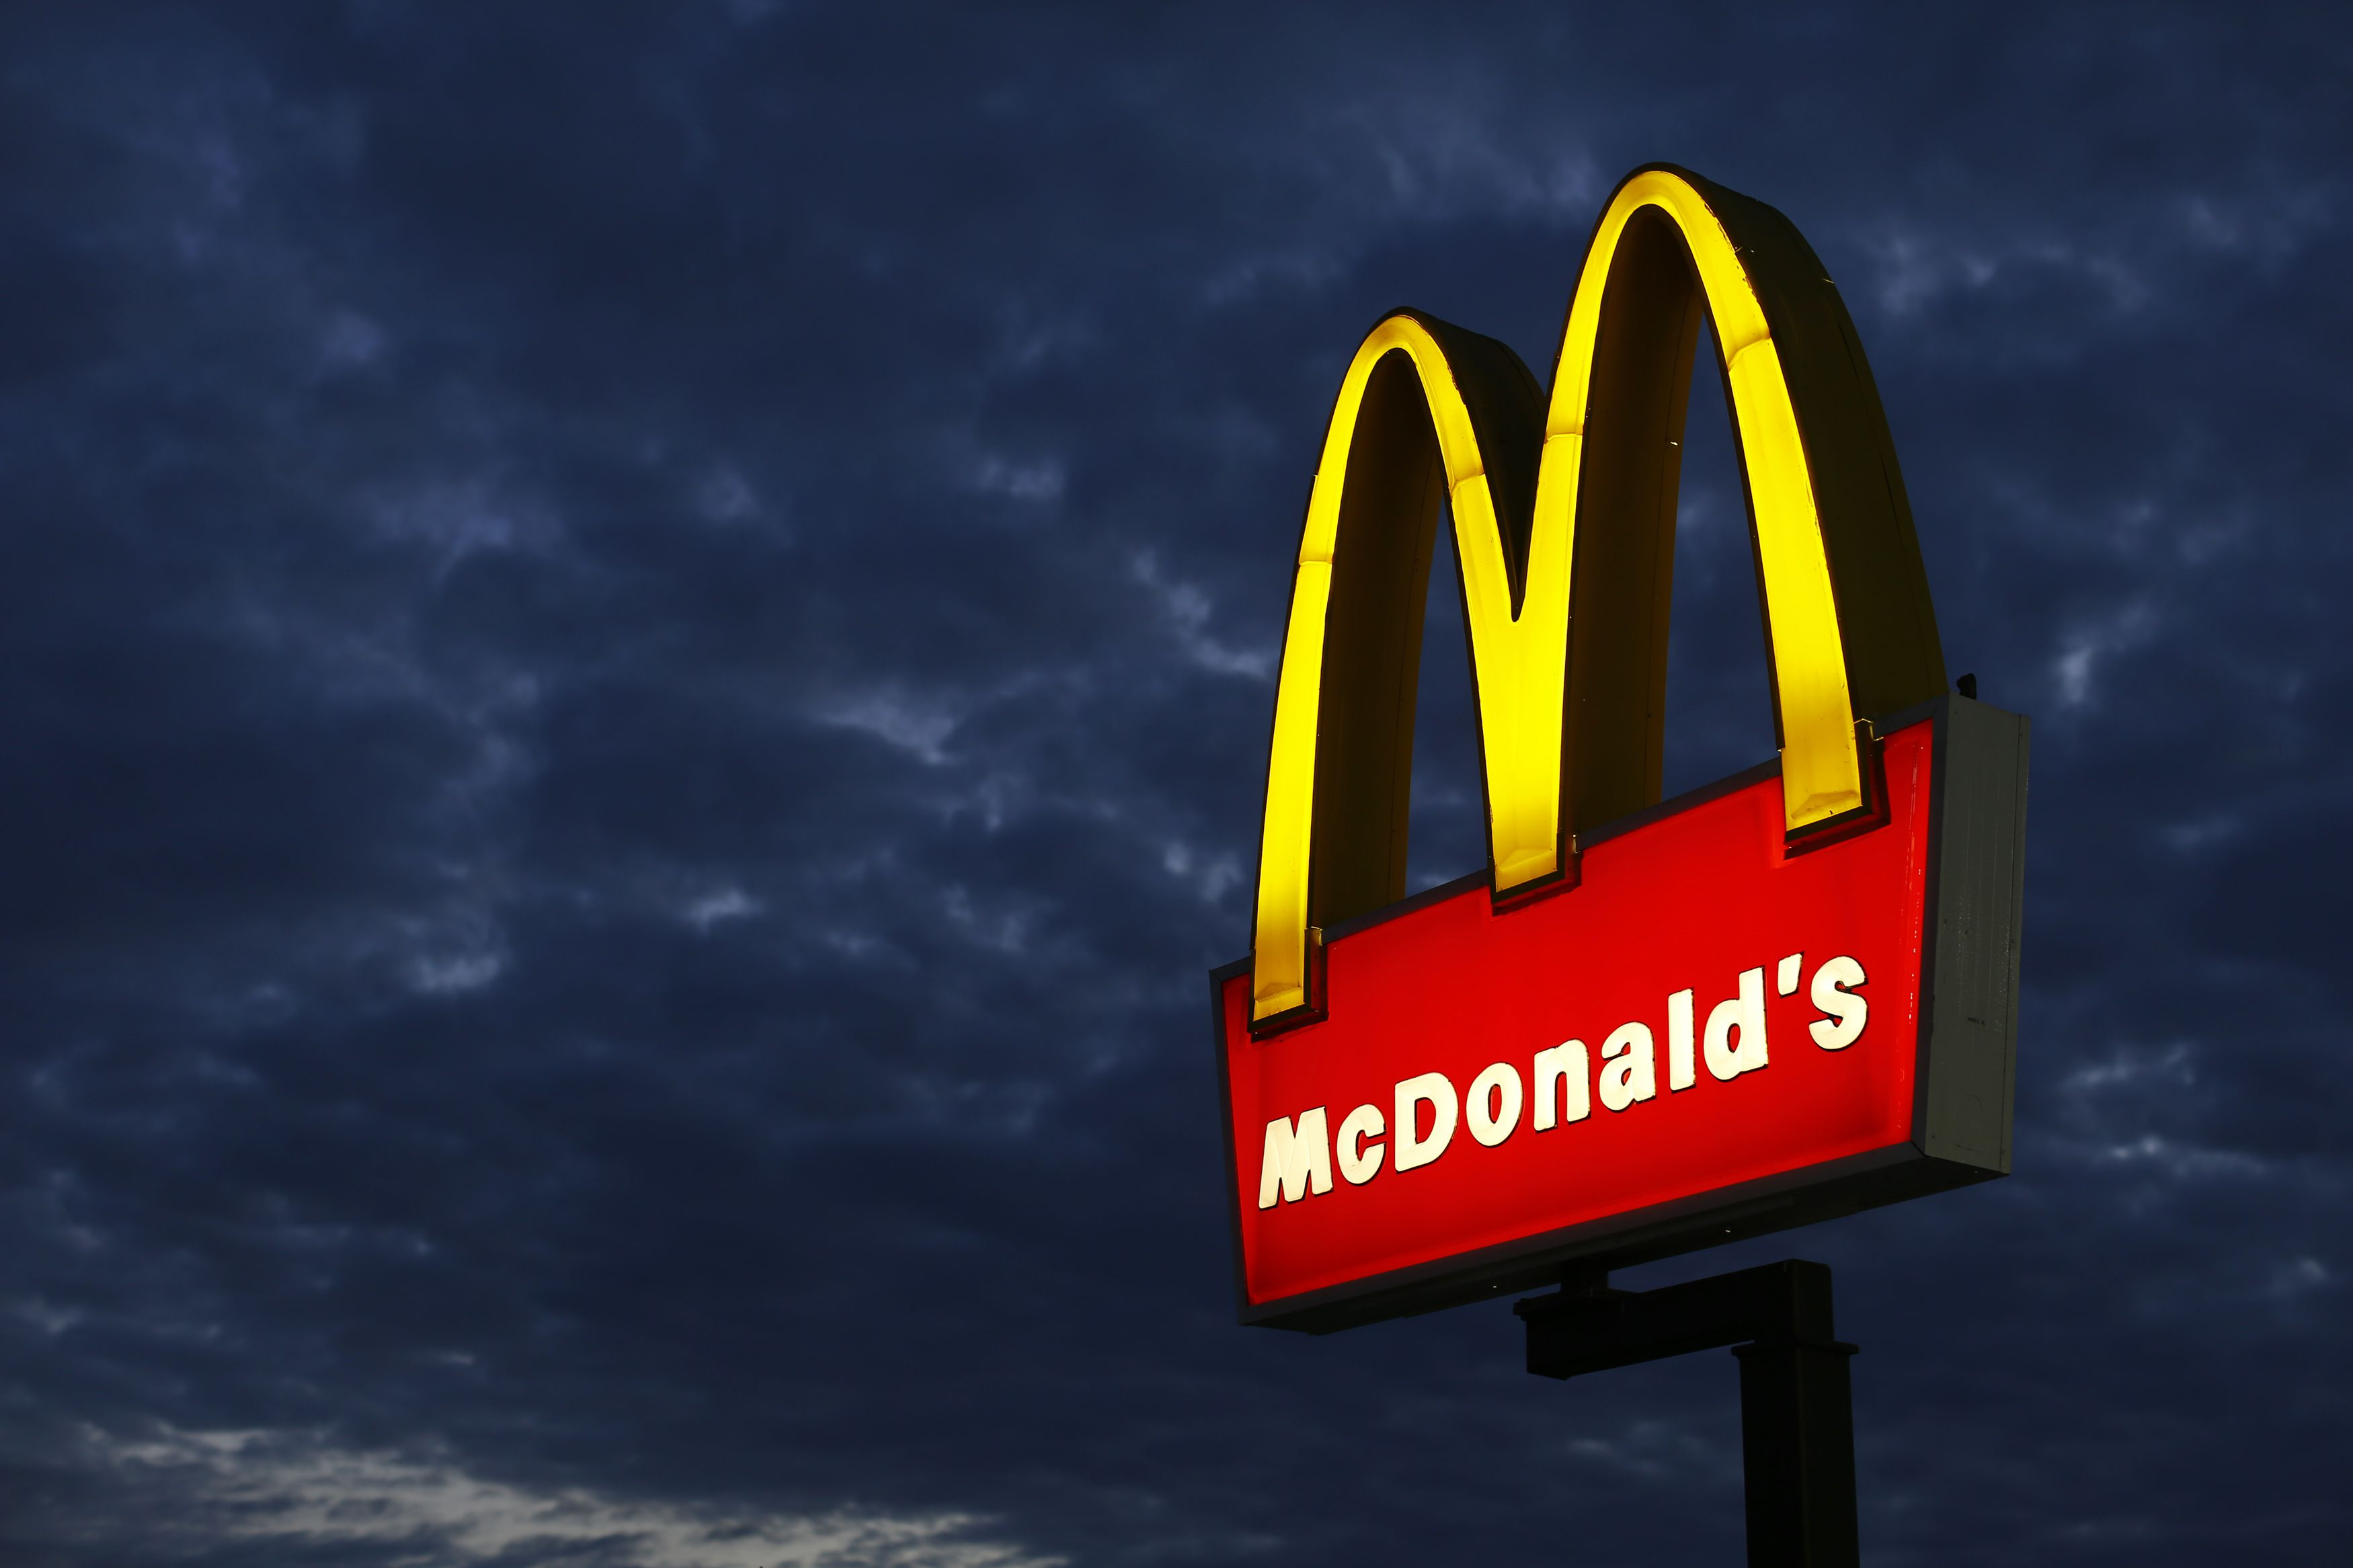 A McDonald's restaurant is pictured in Encinitas, California September 9, 2014. McDonald's Corp on Tuesday reported declining sales at established restaurants across all regions in August, the fifth monthly drop since CEO Don Thompson took the helm in July 2012, and warned a China supplier scandal would cut into profits.  REUTERS/Mike Blake (UNITED STATES - Tags: BUSINESS FOOD) - RTR45JJI